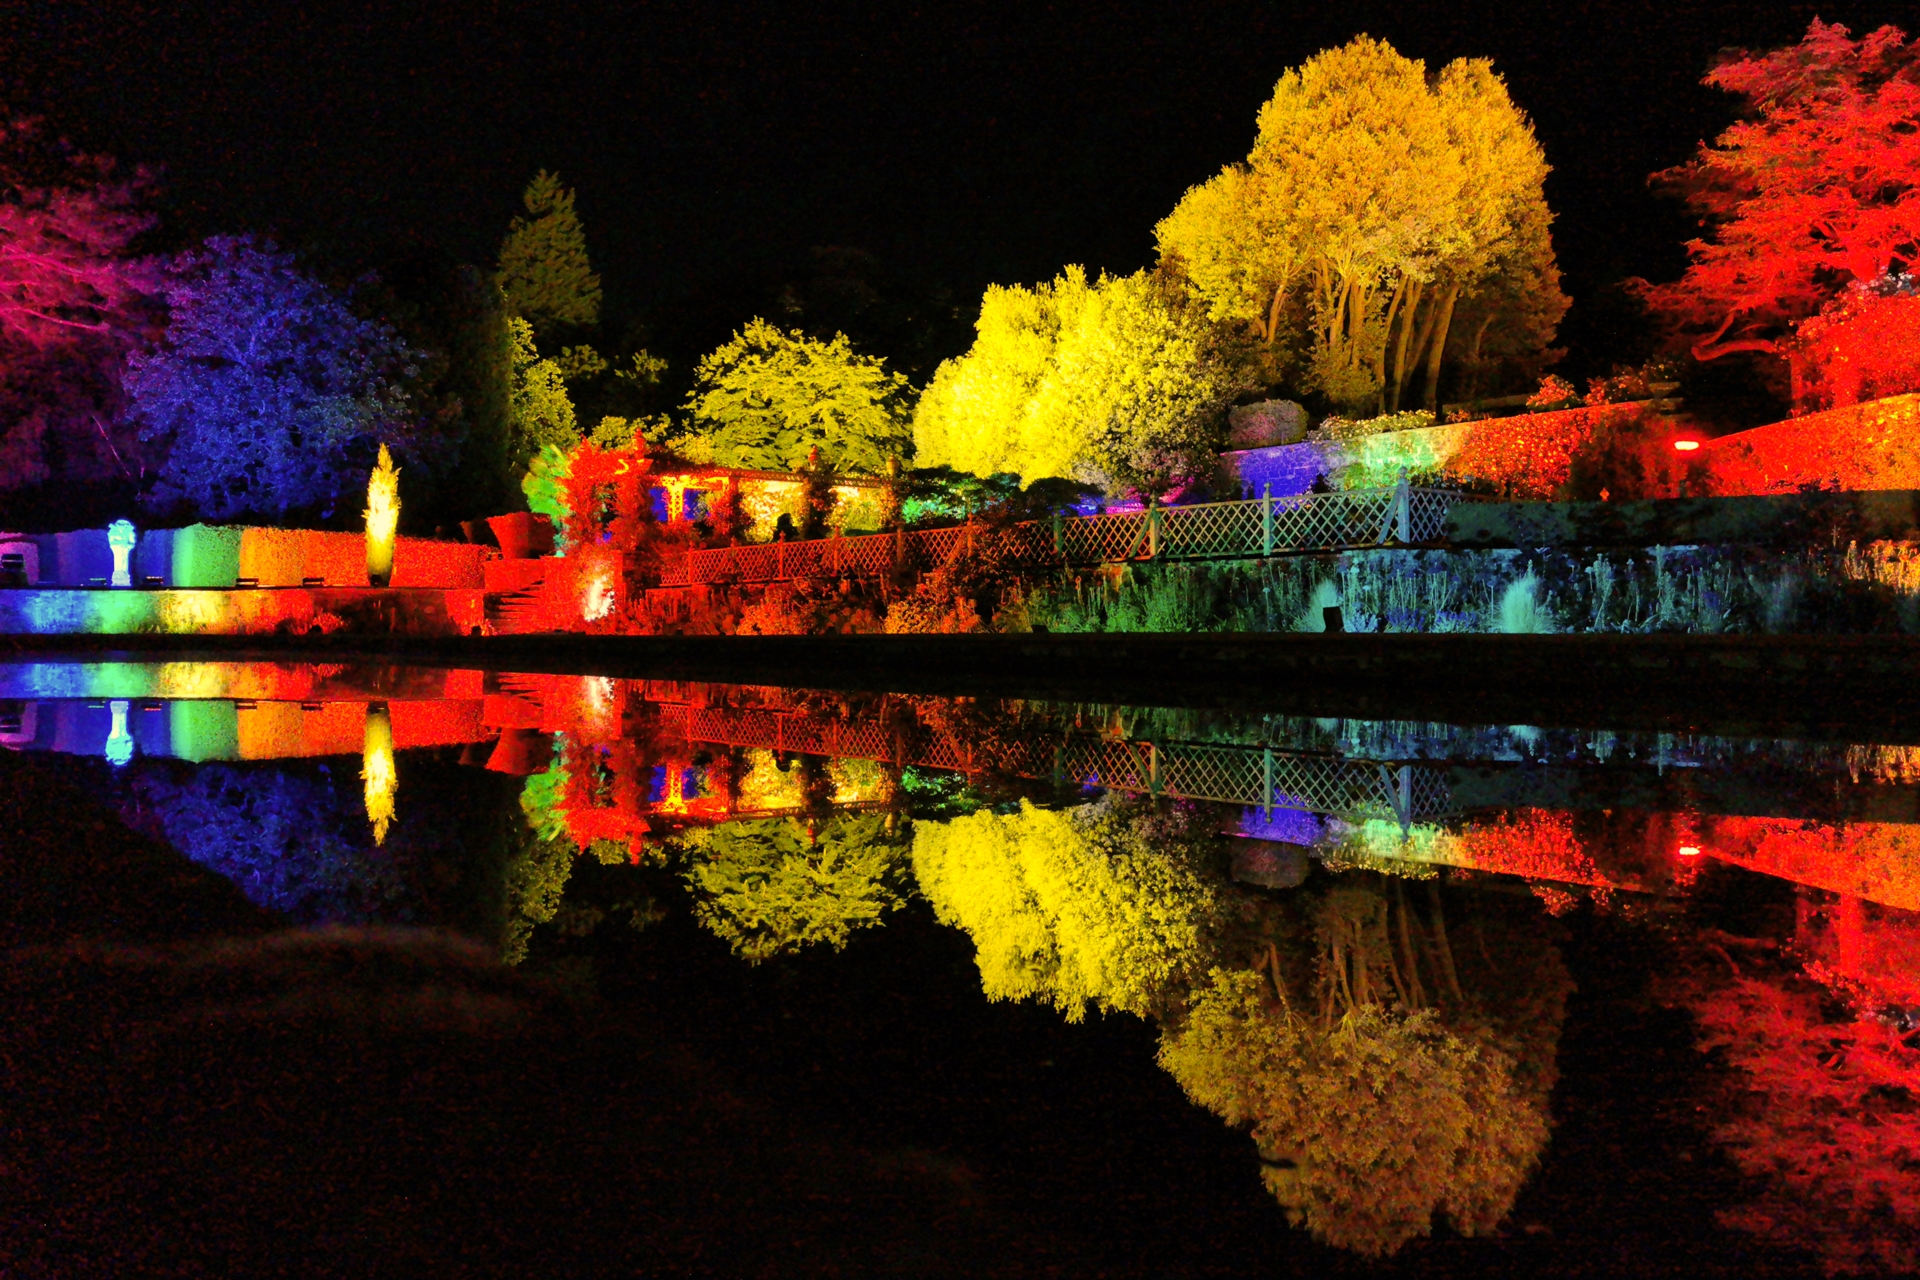 Bodnant Garden Lit Lighting Terrace Lily Pond Pin Mill 2321